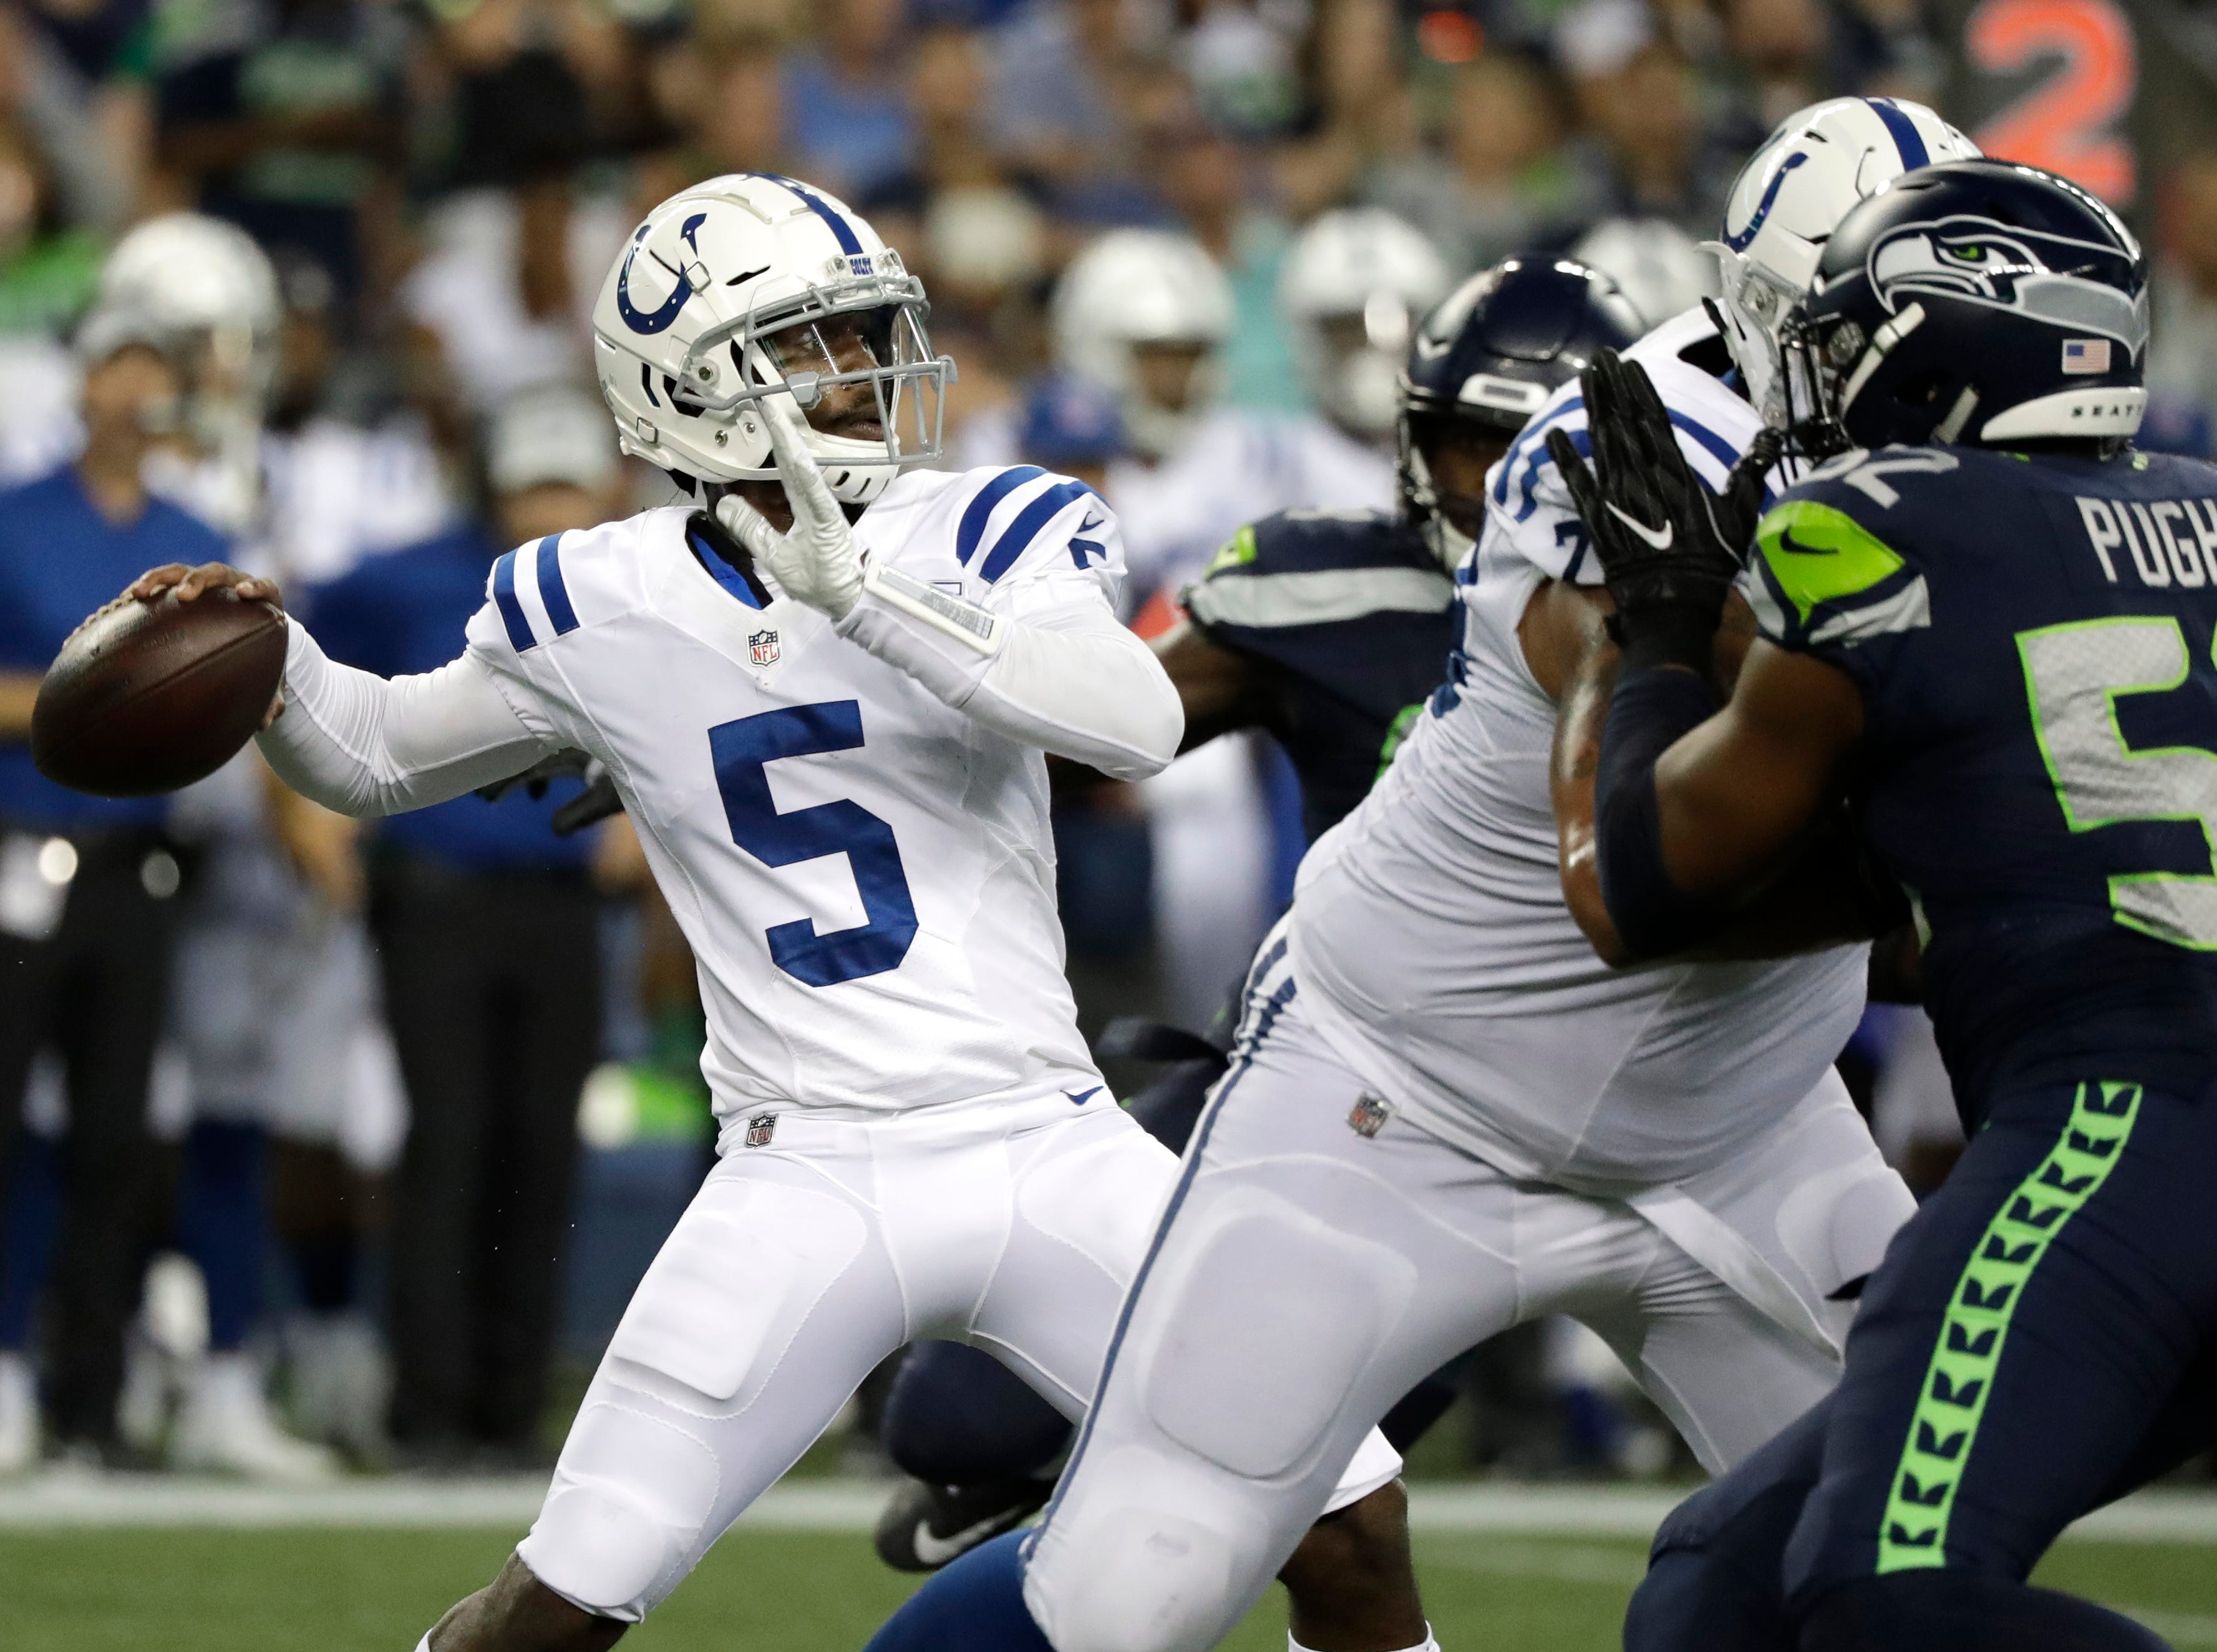 Indianapolis Colts quarterback Phillip Walker passes against the Seattle Seahawks during the second half of an NFL football preseason game, Thursday, Aug. 9, 2018, in Seattle. (AP Photo/Elaine Thompson)